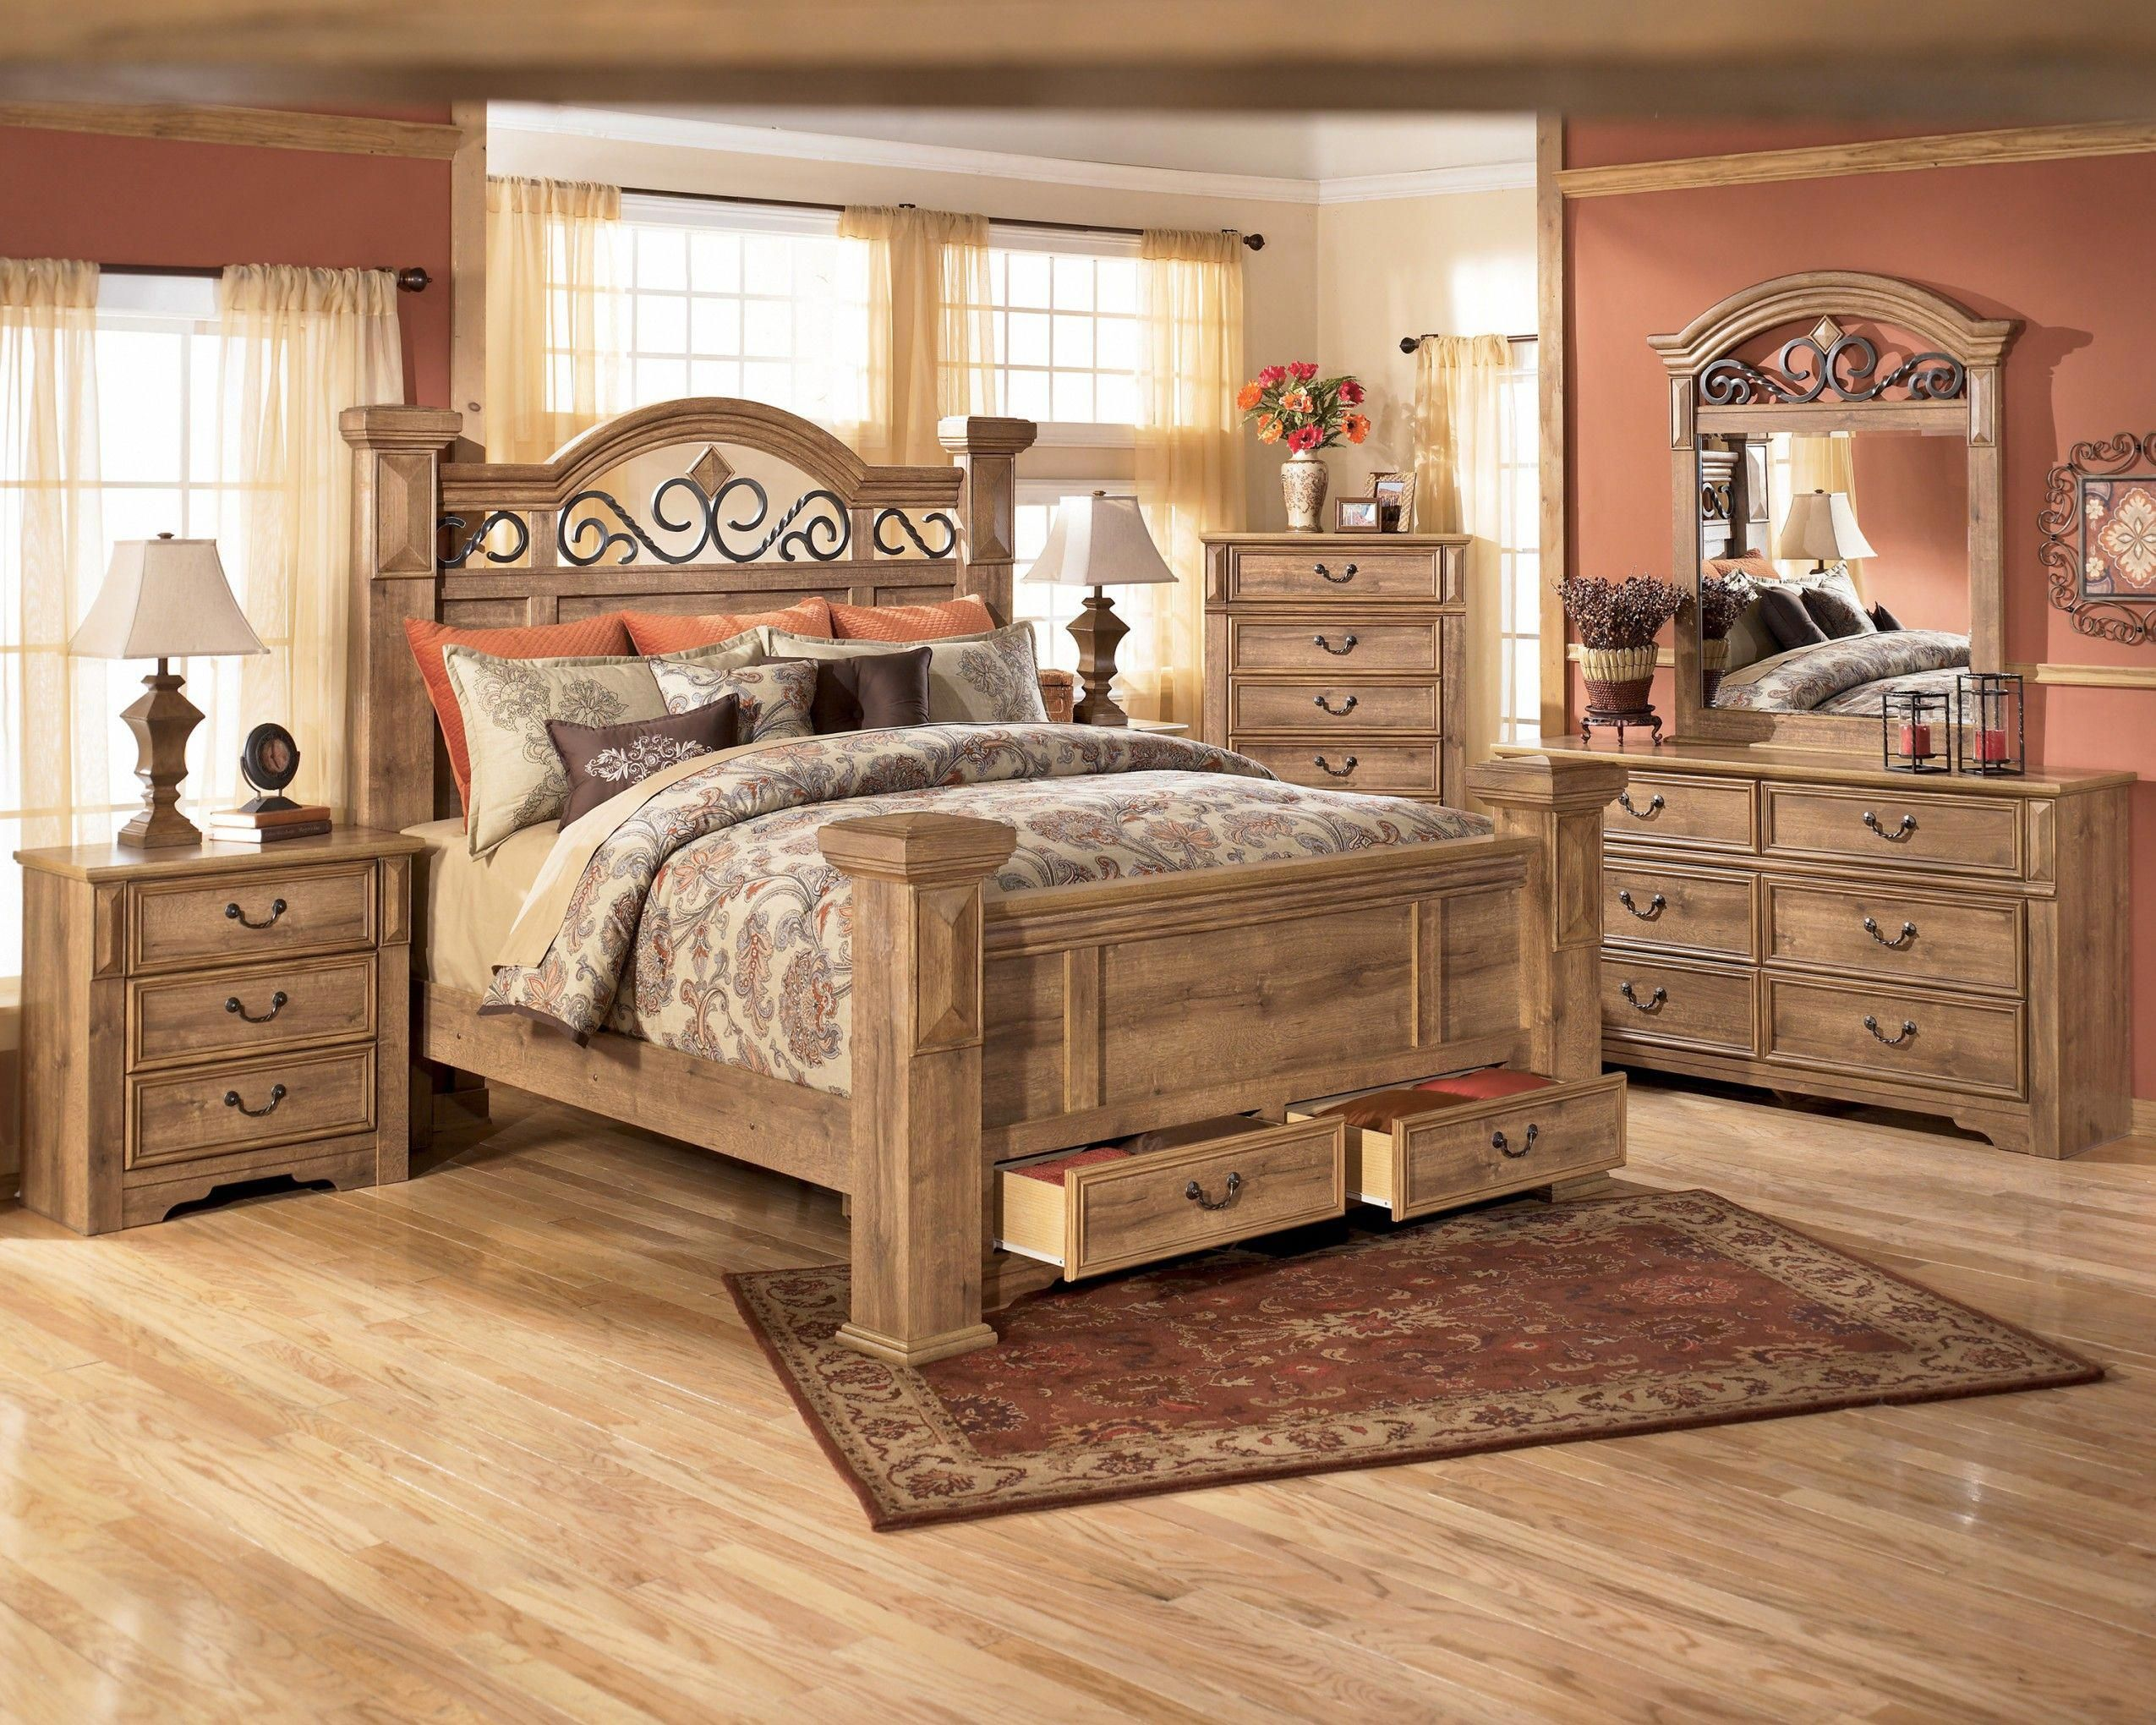 Awesome queen size bedroom furniture sets ashley furniture queen size bedroom sets black queen size bedroom furniture set gembloon cheap queen size